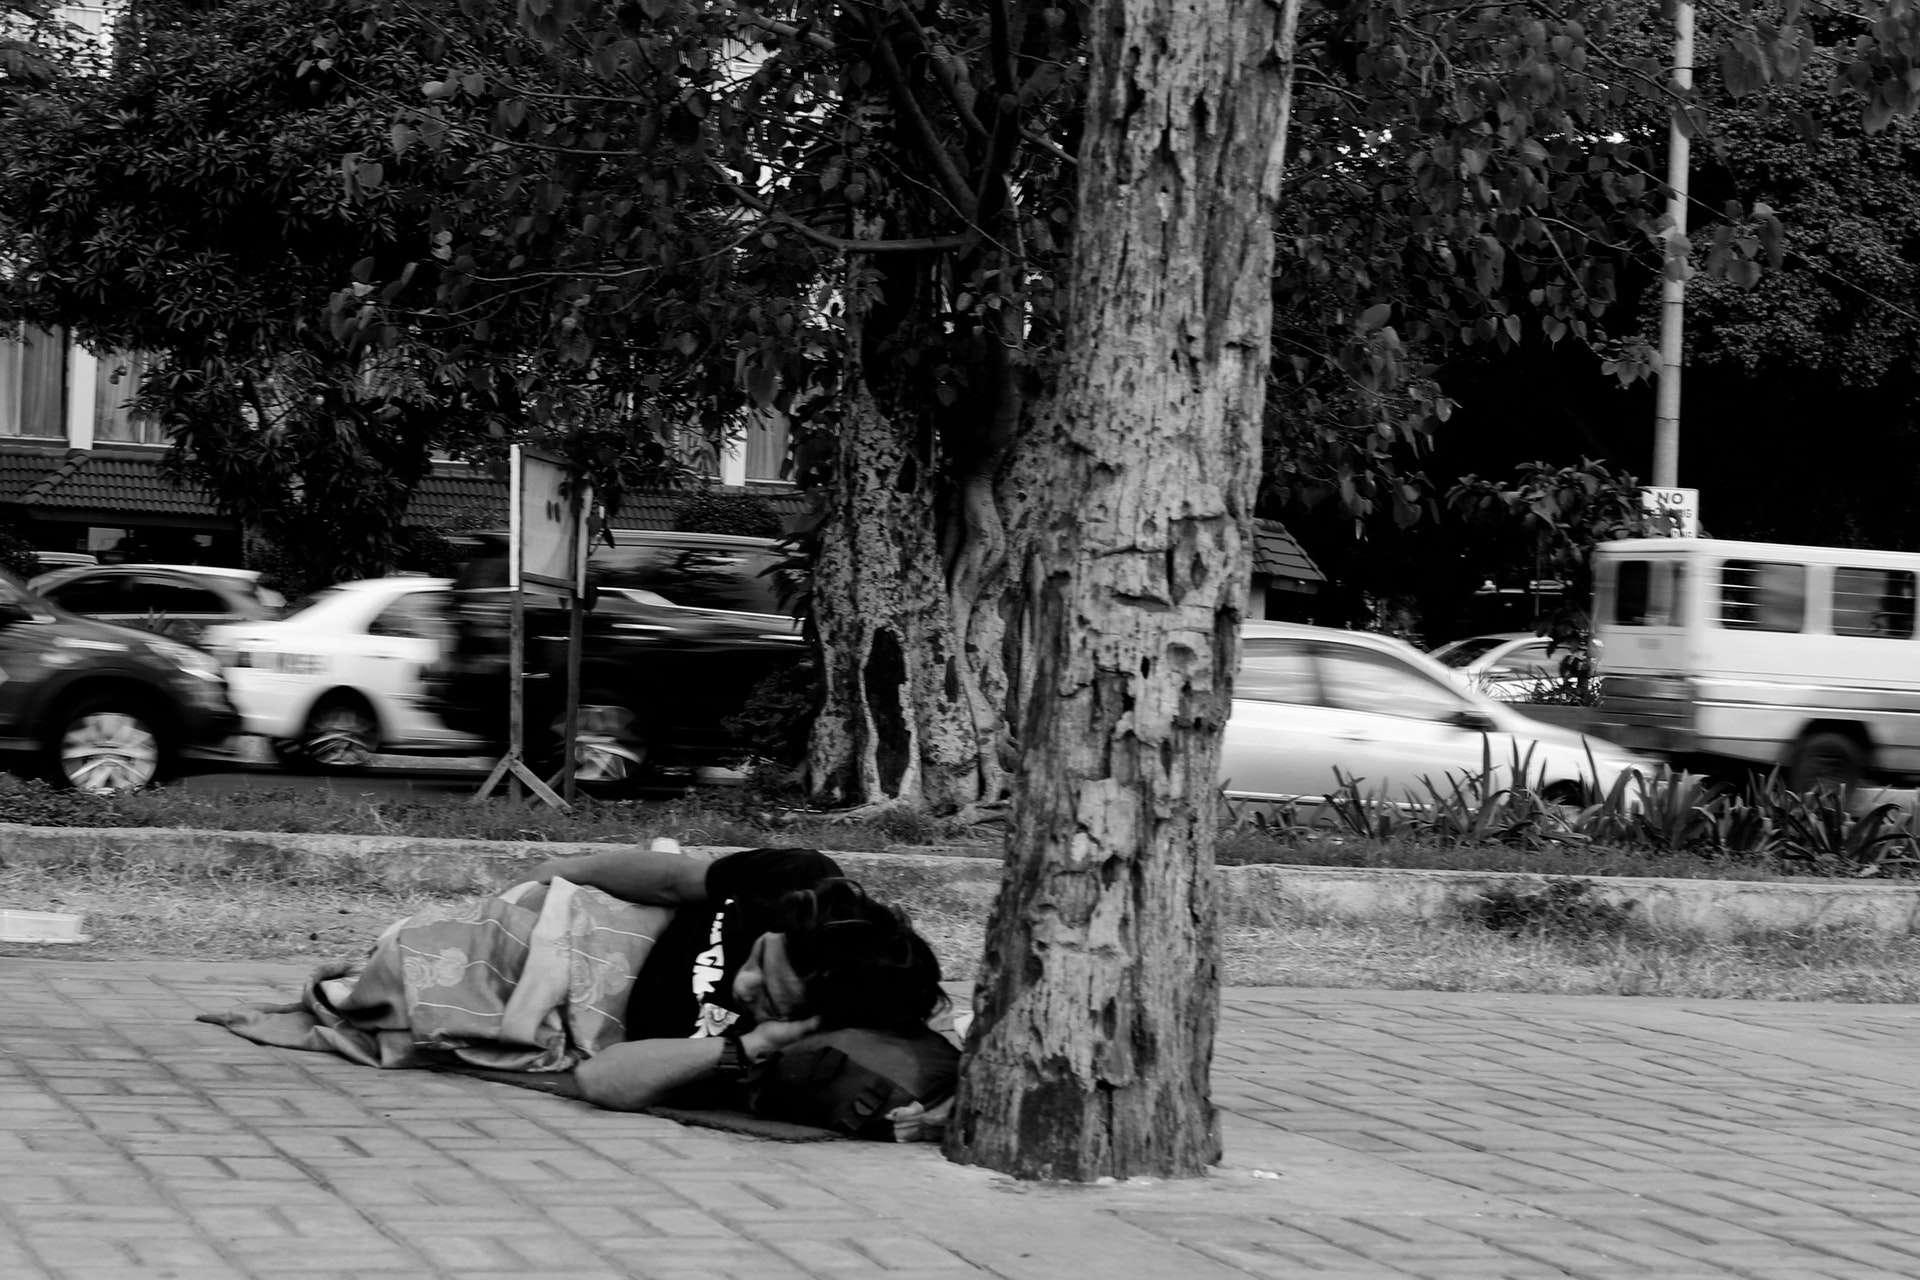 Homeless veteran sleeping outside next to a tree on the street